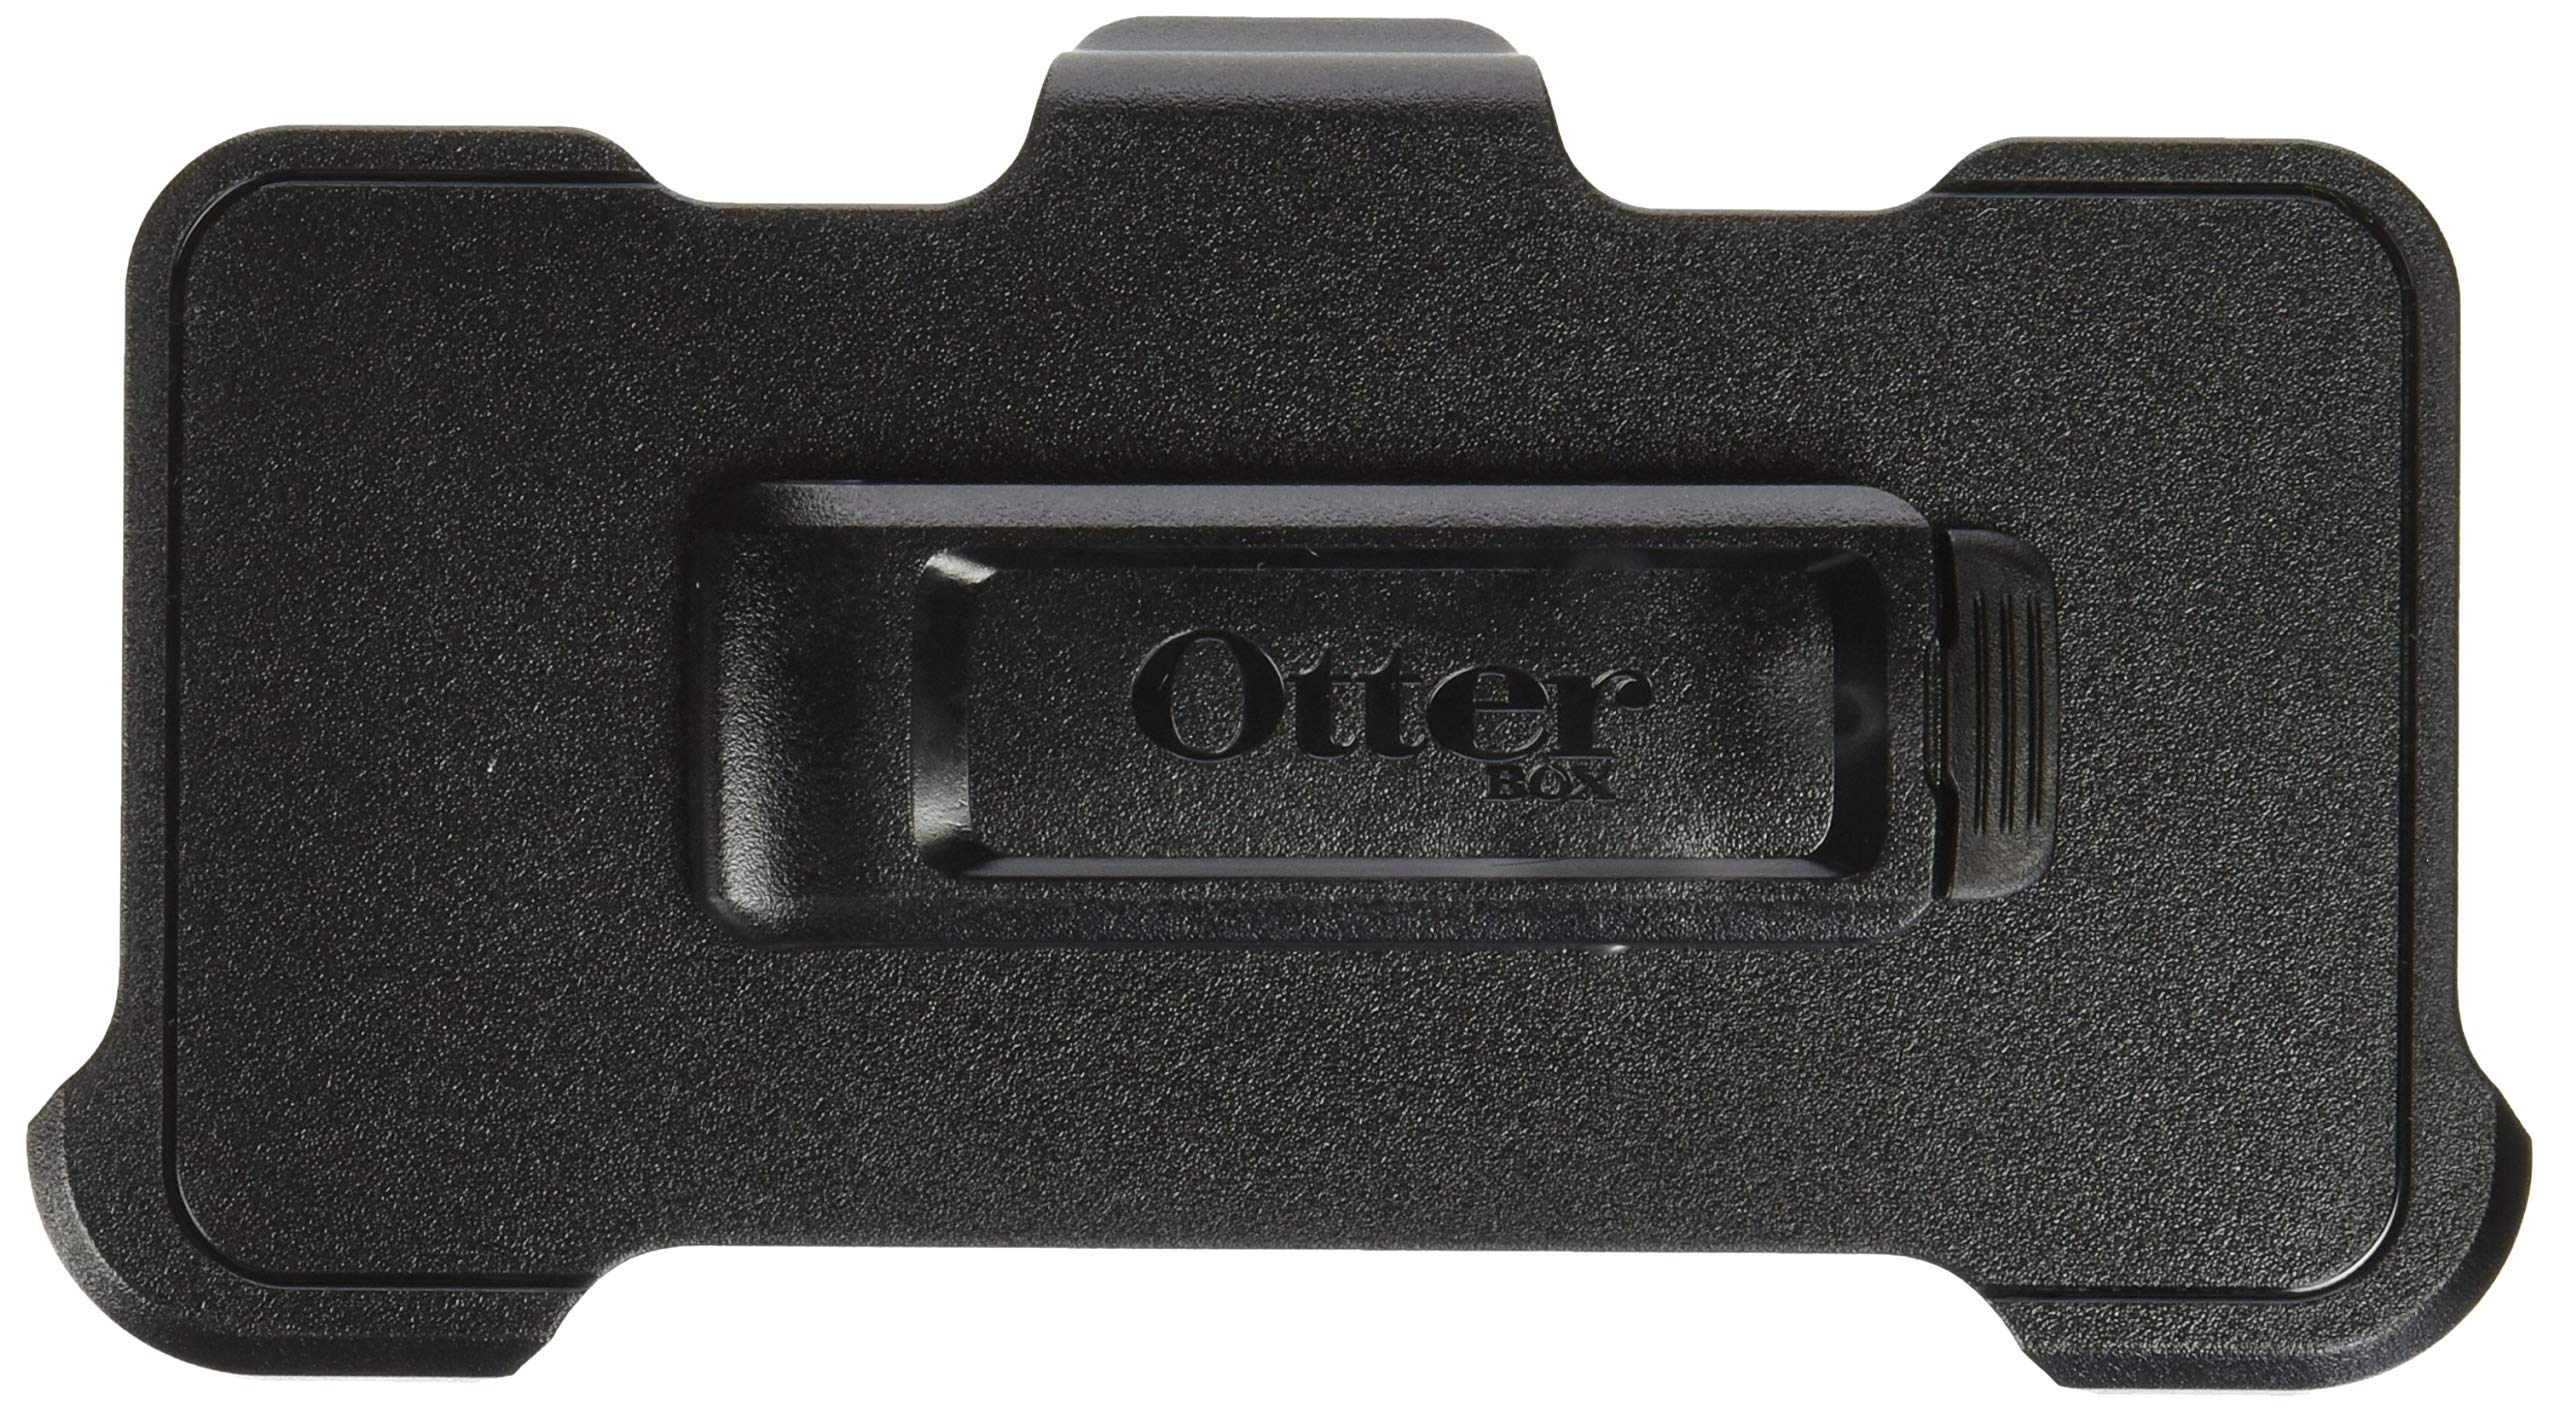 OtterBox Holster Belt Clip for OtterBox Defender Series Apple iPhone 7/7s Case ONLY- Black - Non-Retail Packaging (Not Intended for Stand-Alone Use) by OtterBox